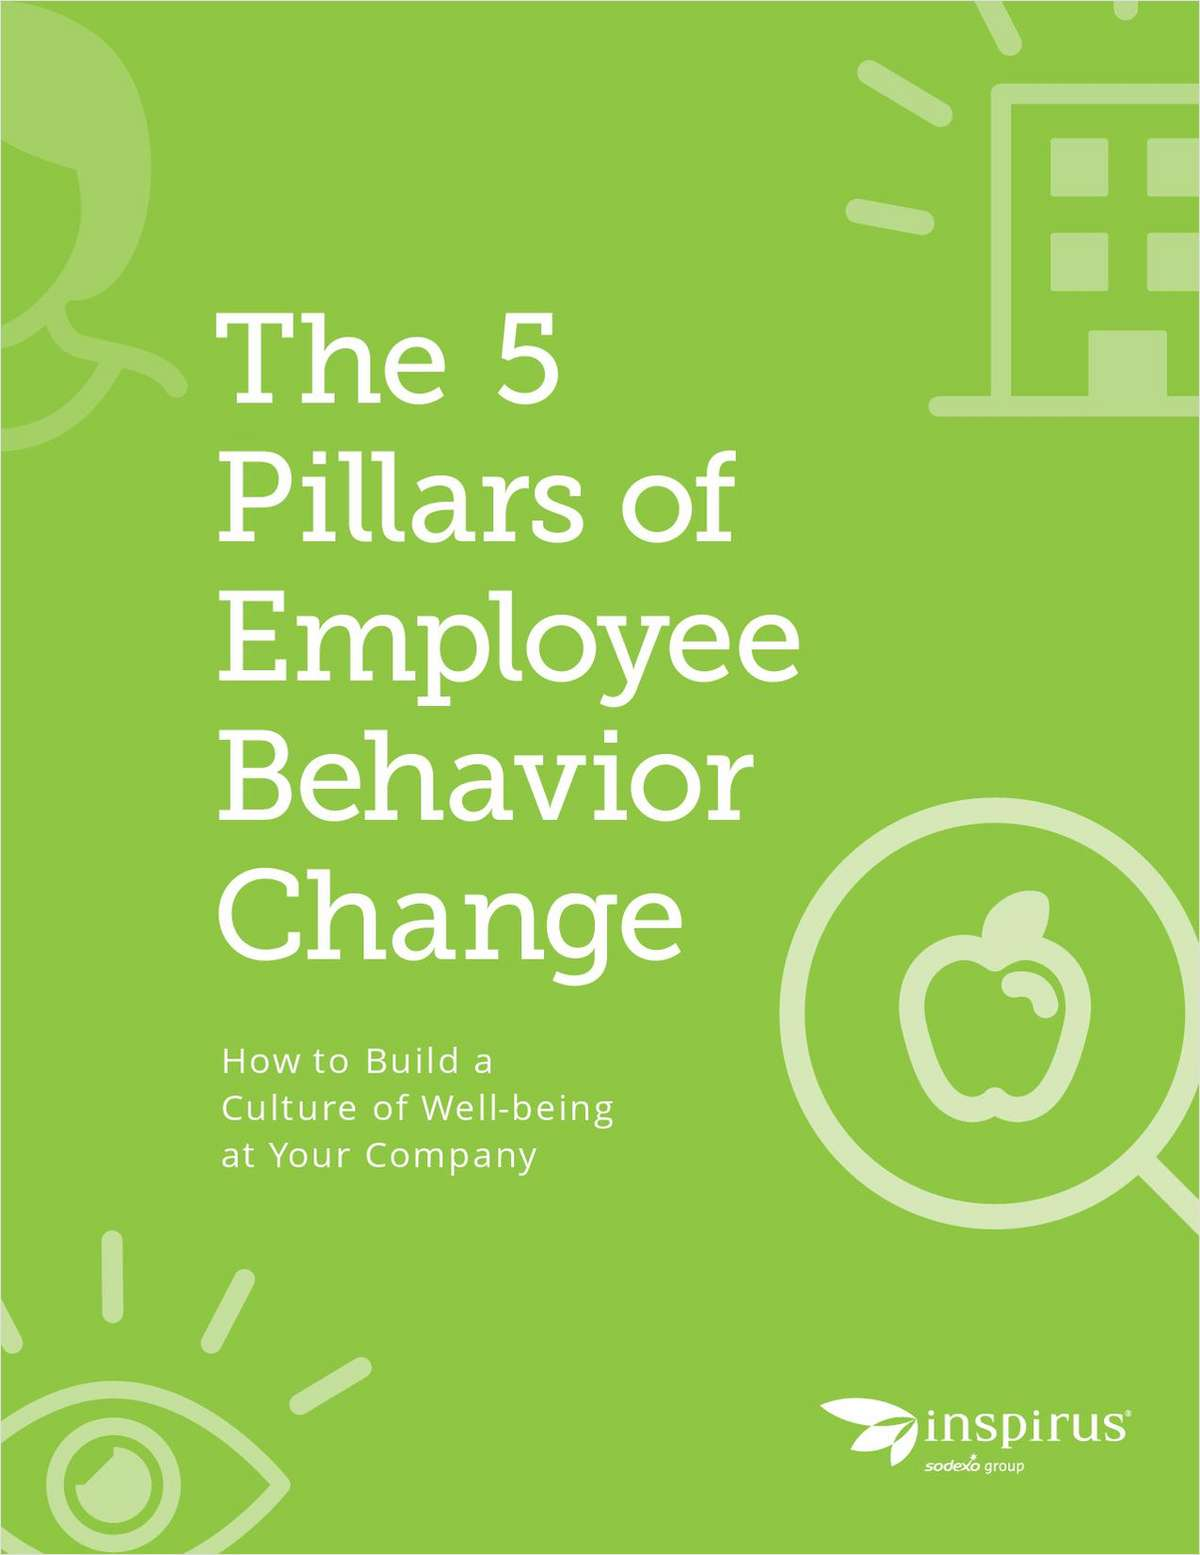 The Five Pillars of Employee Behavior Change